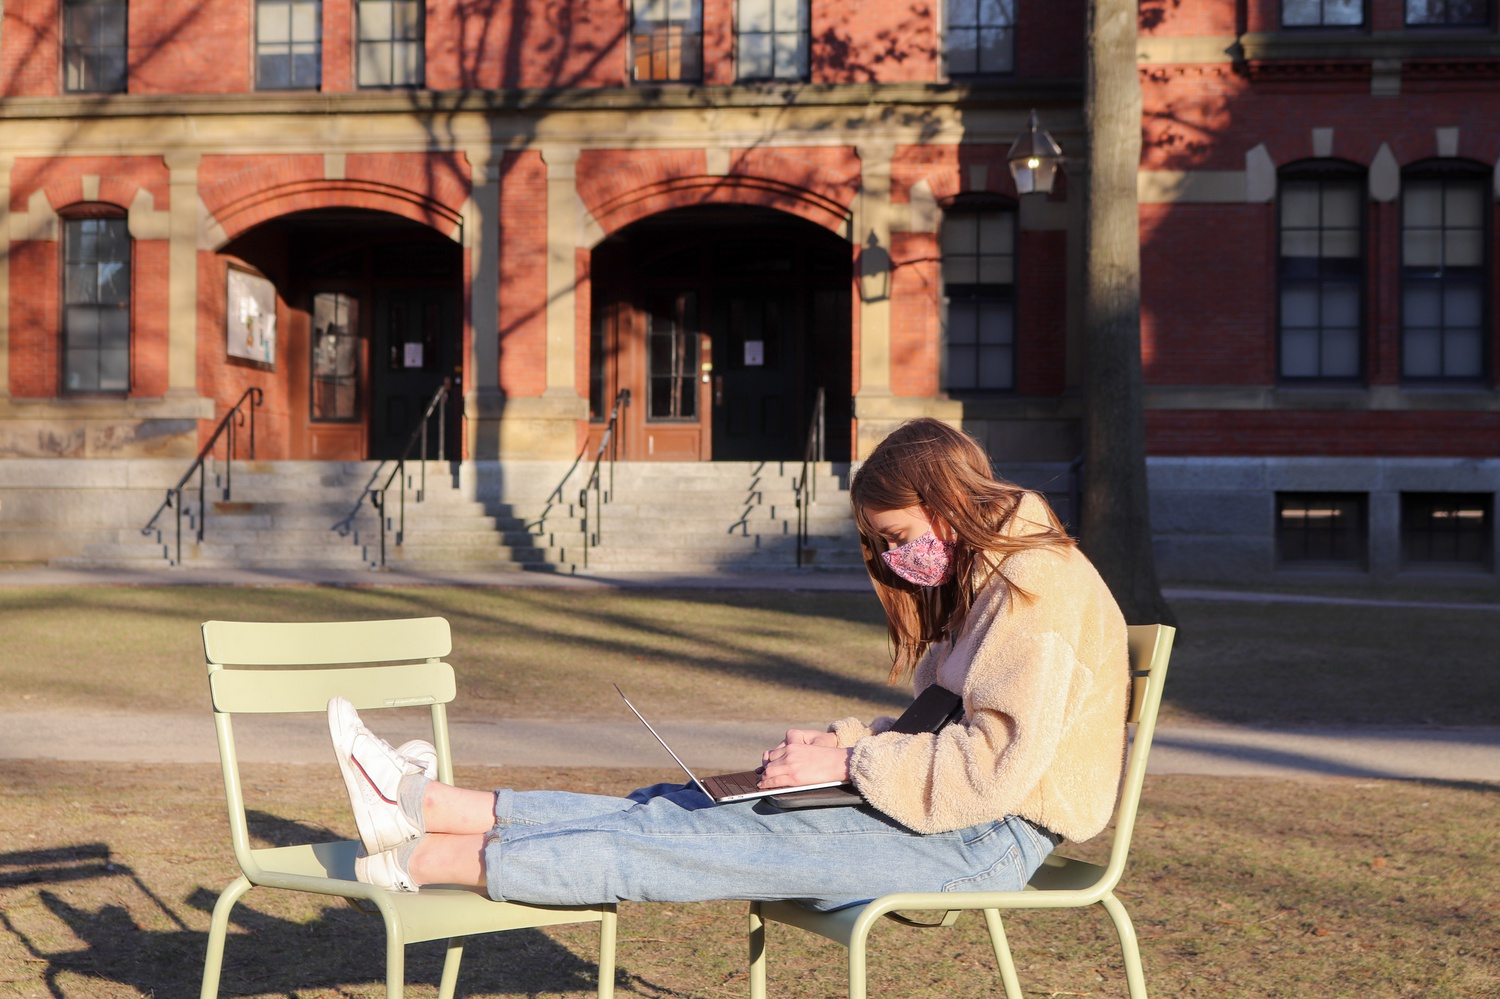 Layla Seaver '24 uses a laptop in Harvard Yard last month. On March 1, the University switched the campus status to Level 4: Lime, relaxing some of the public health restrictions faced by on-campus students.